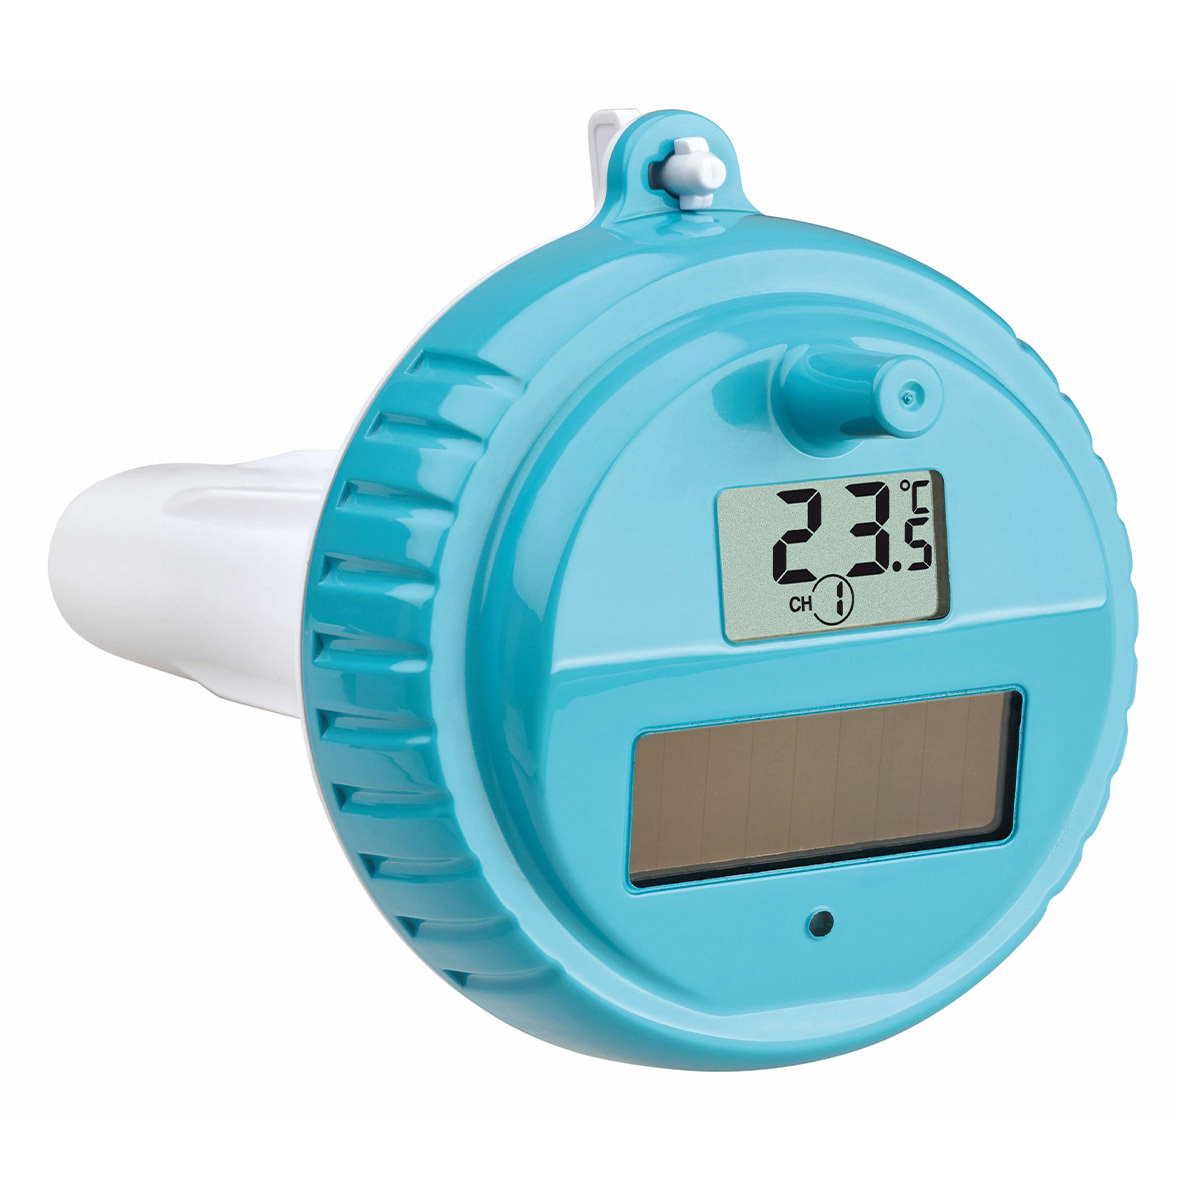 30-3056-10-funk-poolthermometer-venice-sender-1200x1200px.jpg